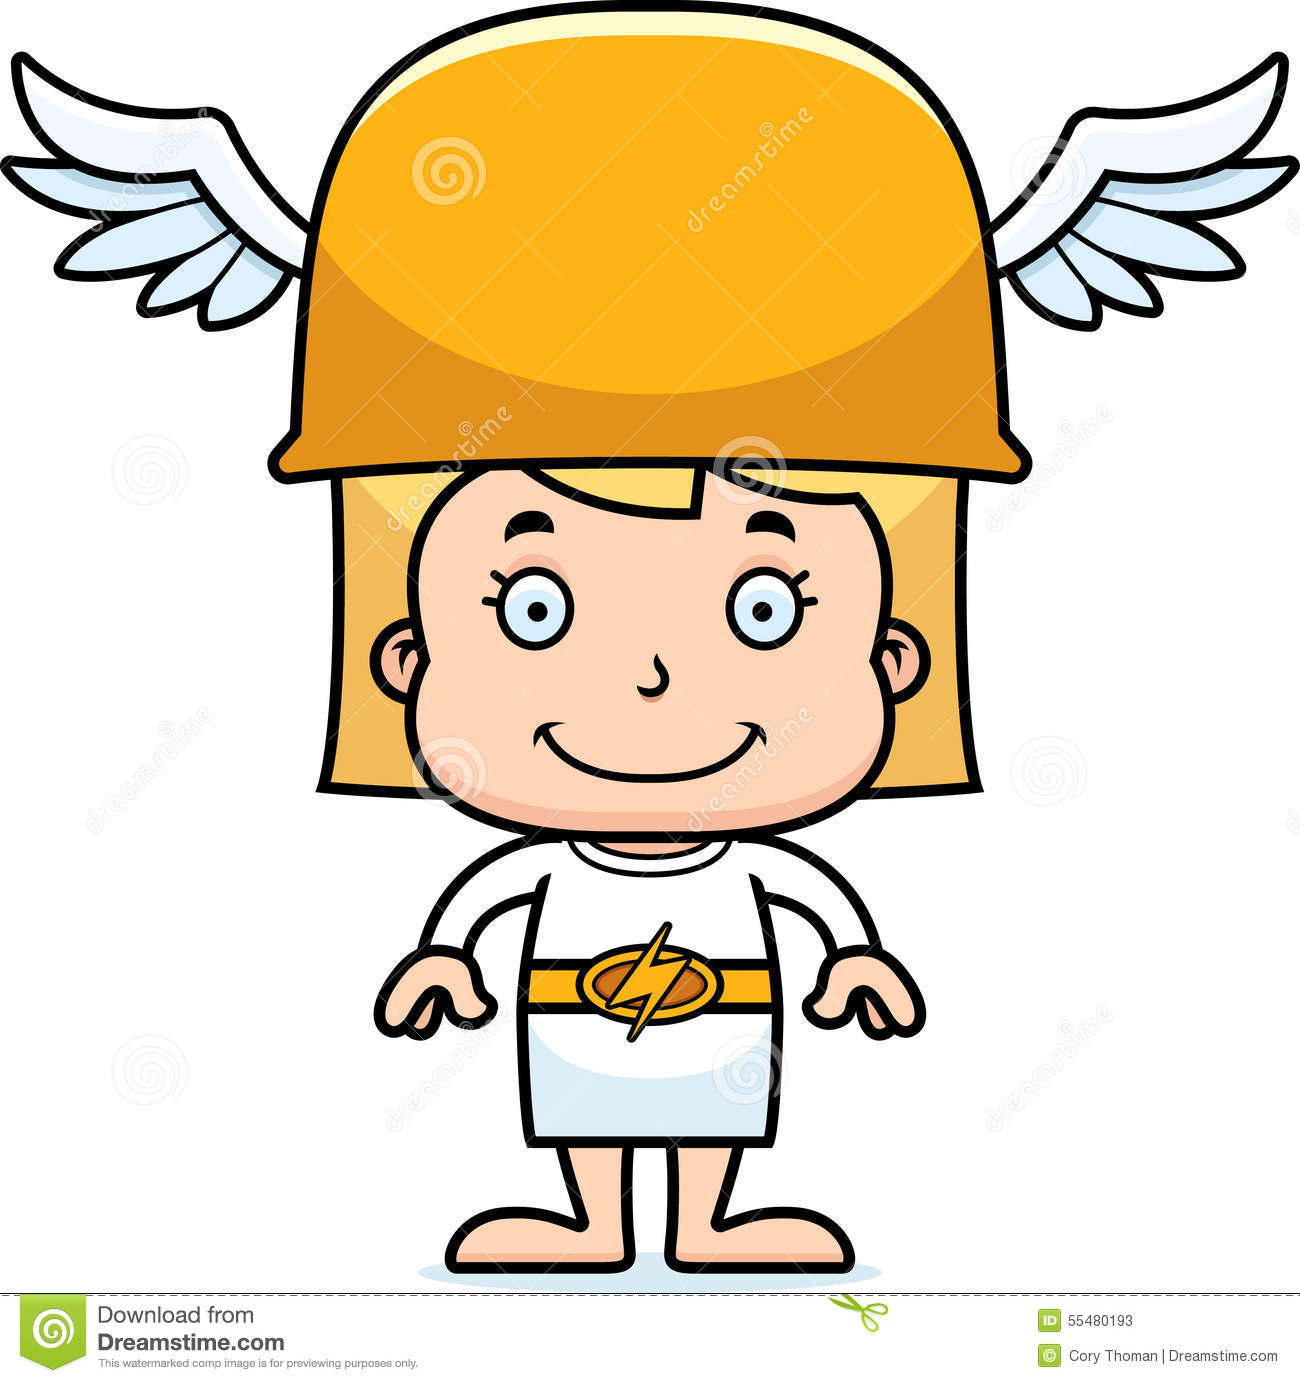 Cartoon Smiling Hermes Girl Stock Vector - Illustration ...